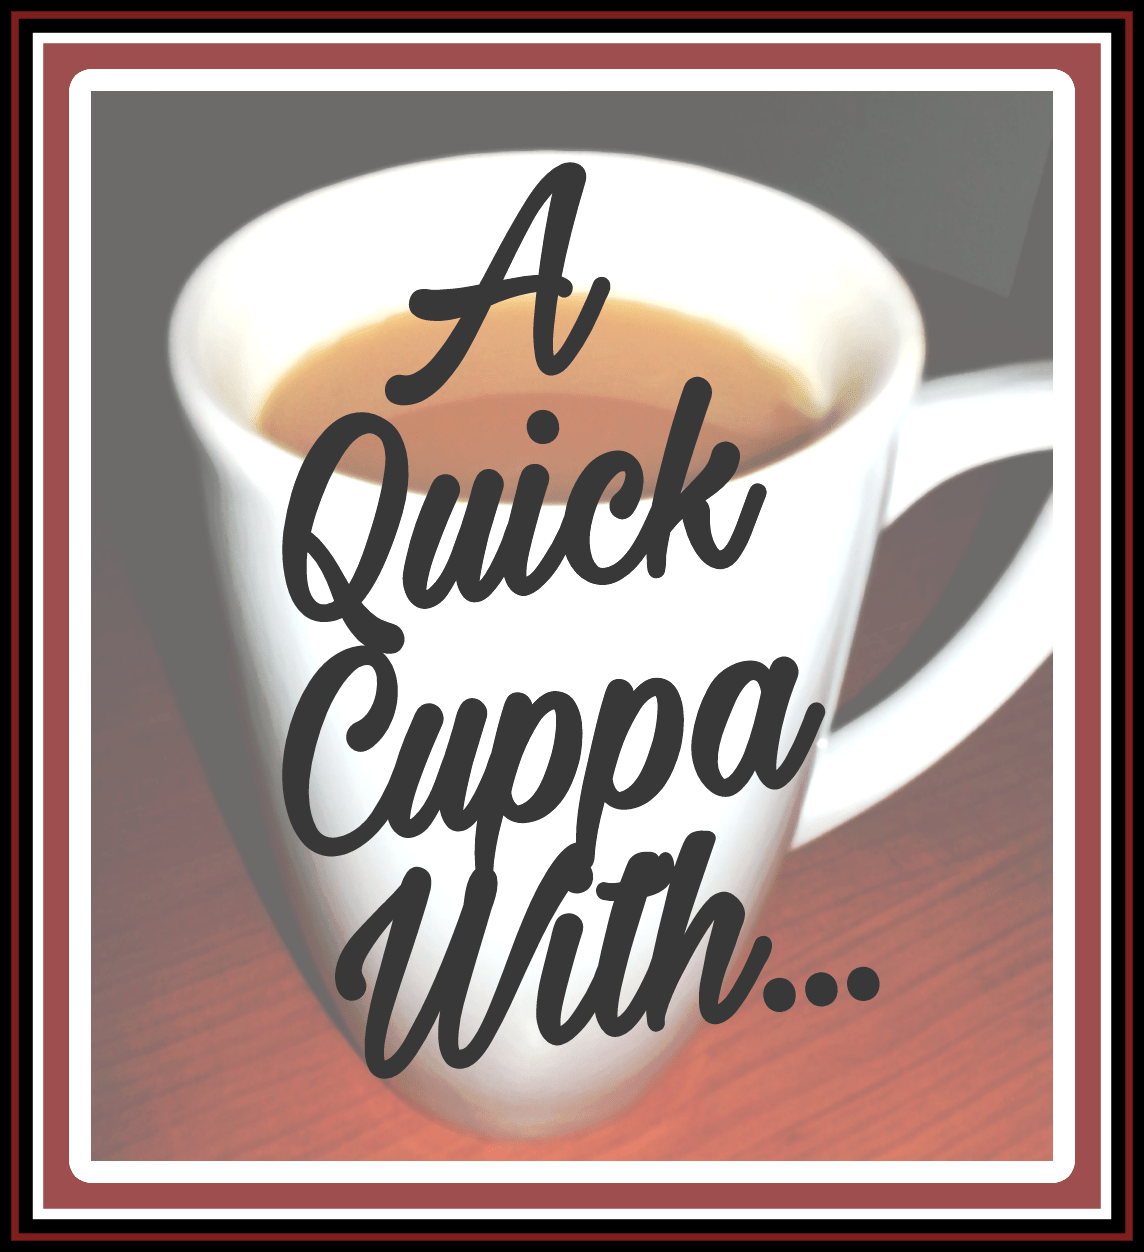 A Quick Cuppa With… The Speed Bump